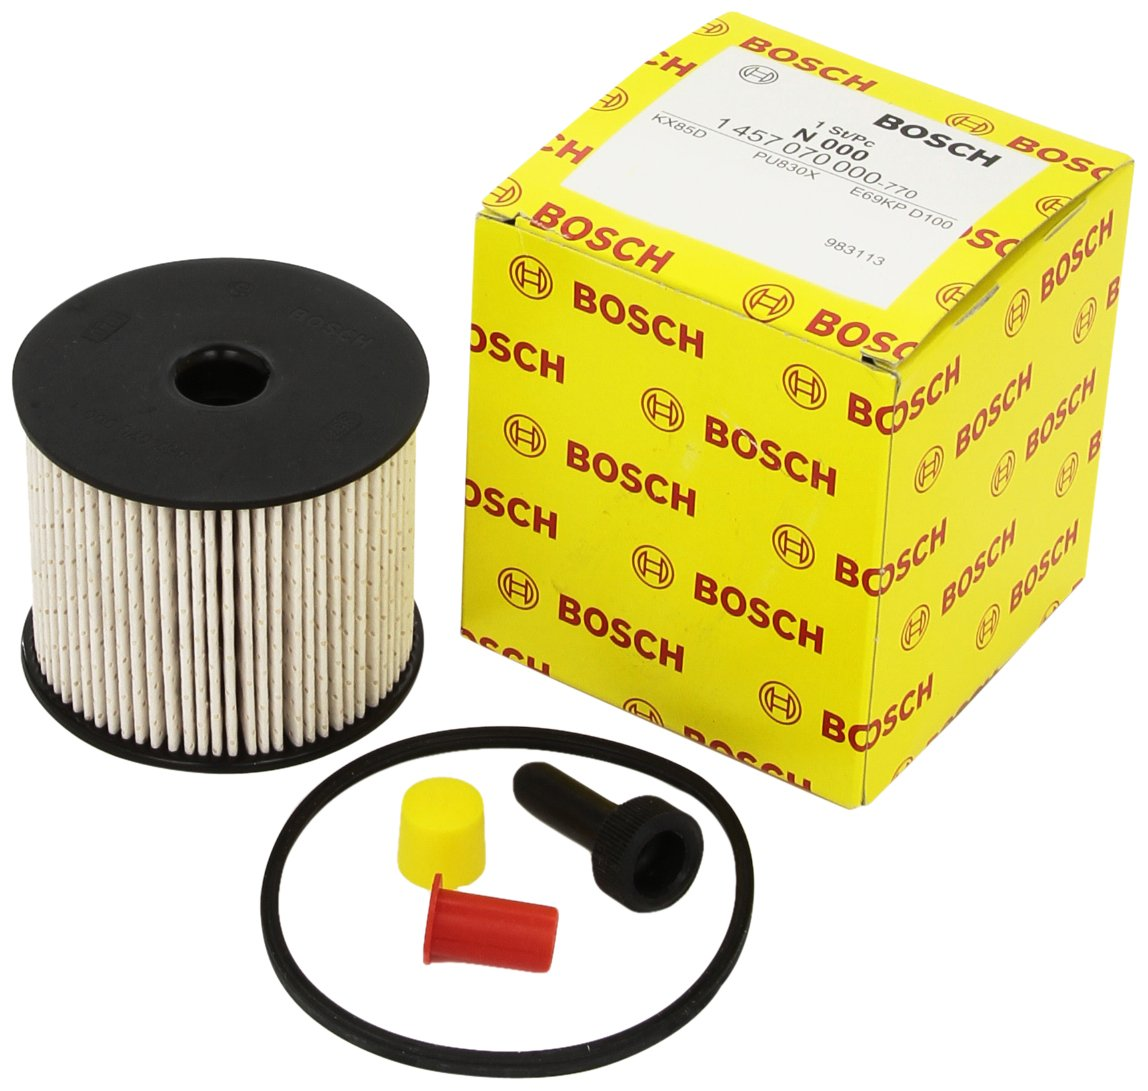 Bosch 1457070000 Filtre à carburant Bosch 1457070000 Filtre à carburant Robert Bosch GmbH Automotive Aftermarket